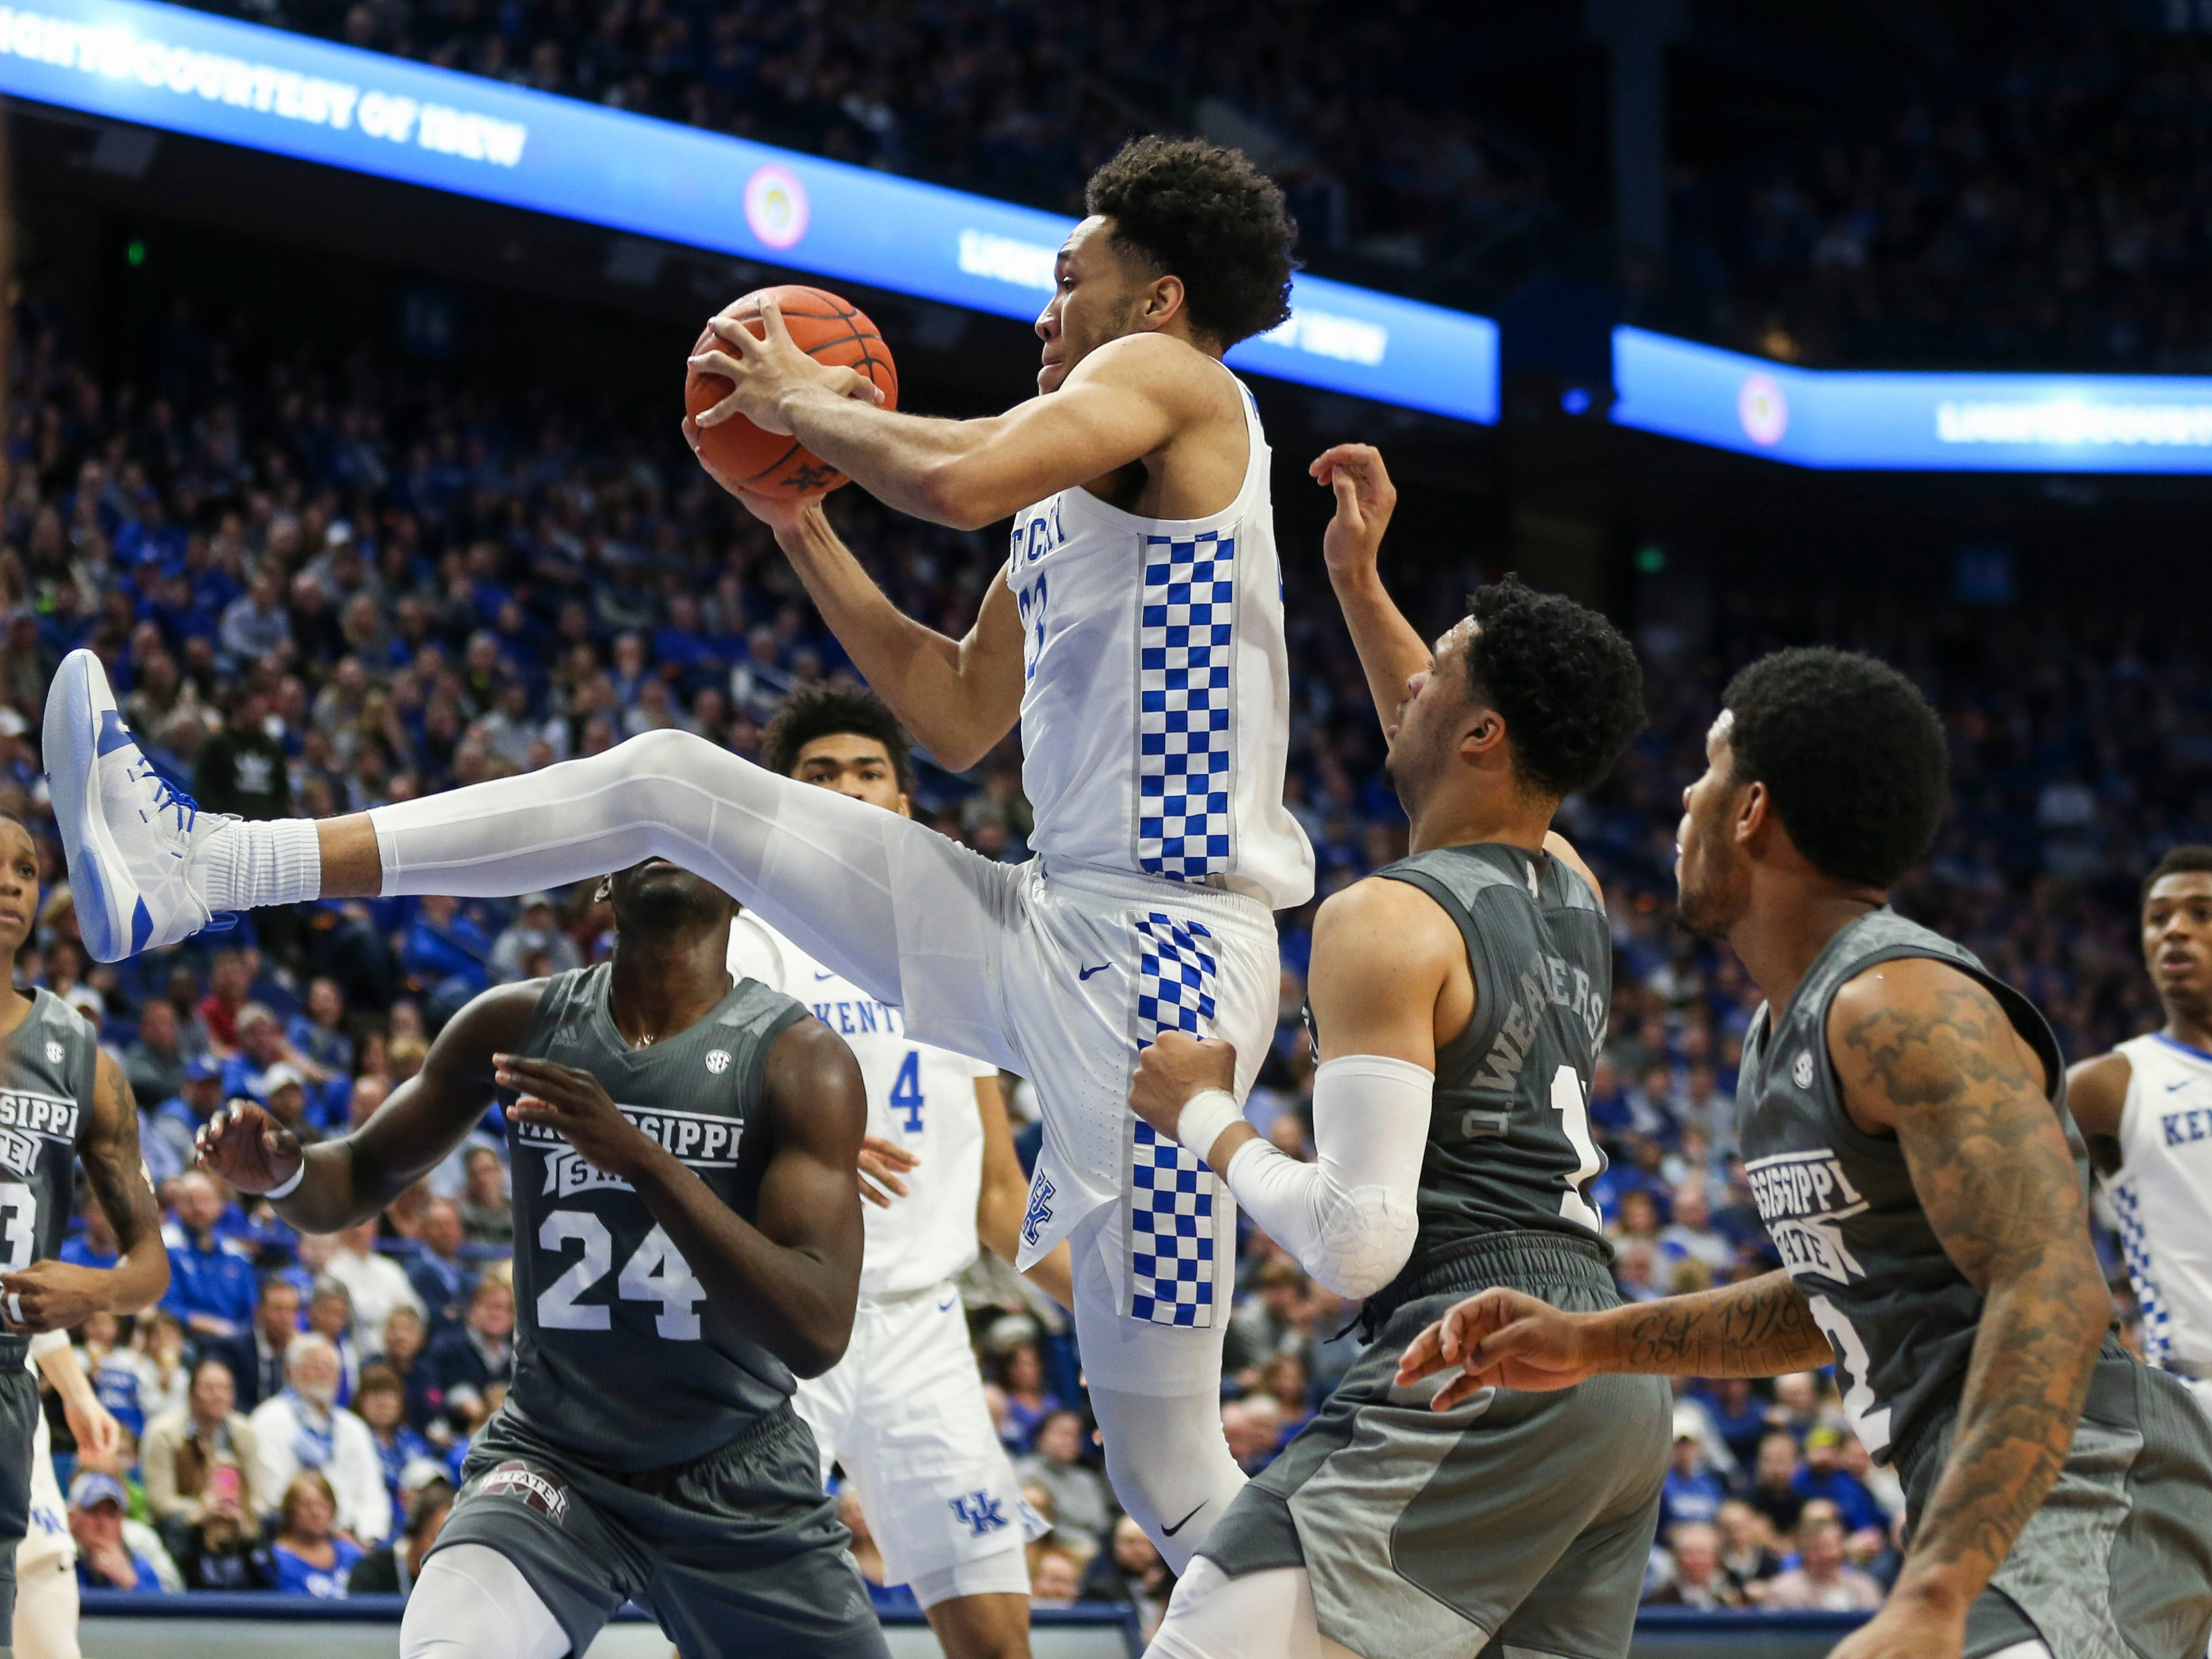 Kentucky's EJ Montgomery grabs a rebound during the Wildcats' 76-55 win Tuesday night at Rupp Arena in Lexington. He finished with five points, including a three-point shot which garnered praise from coach John Calipari.